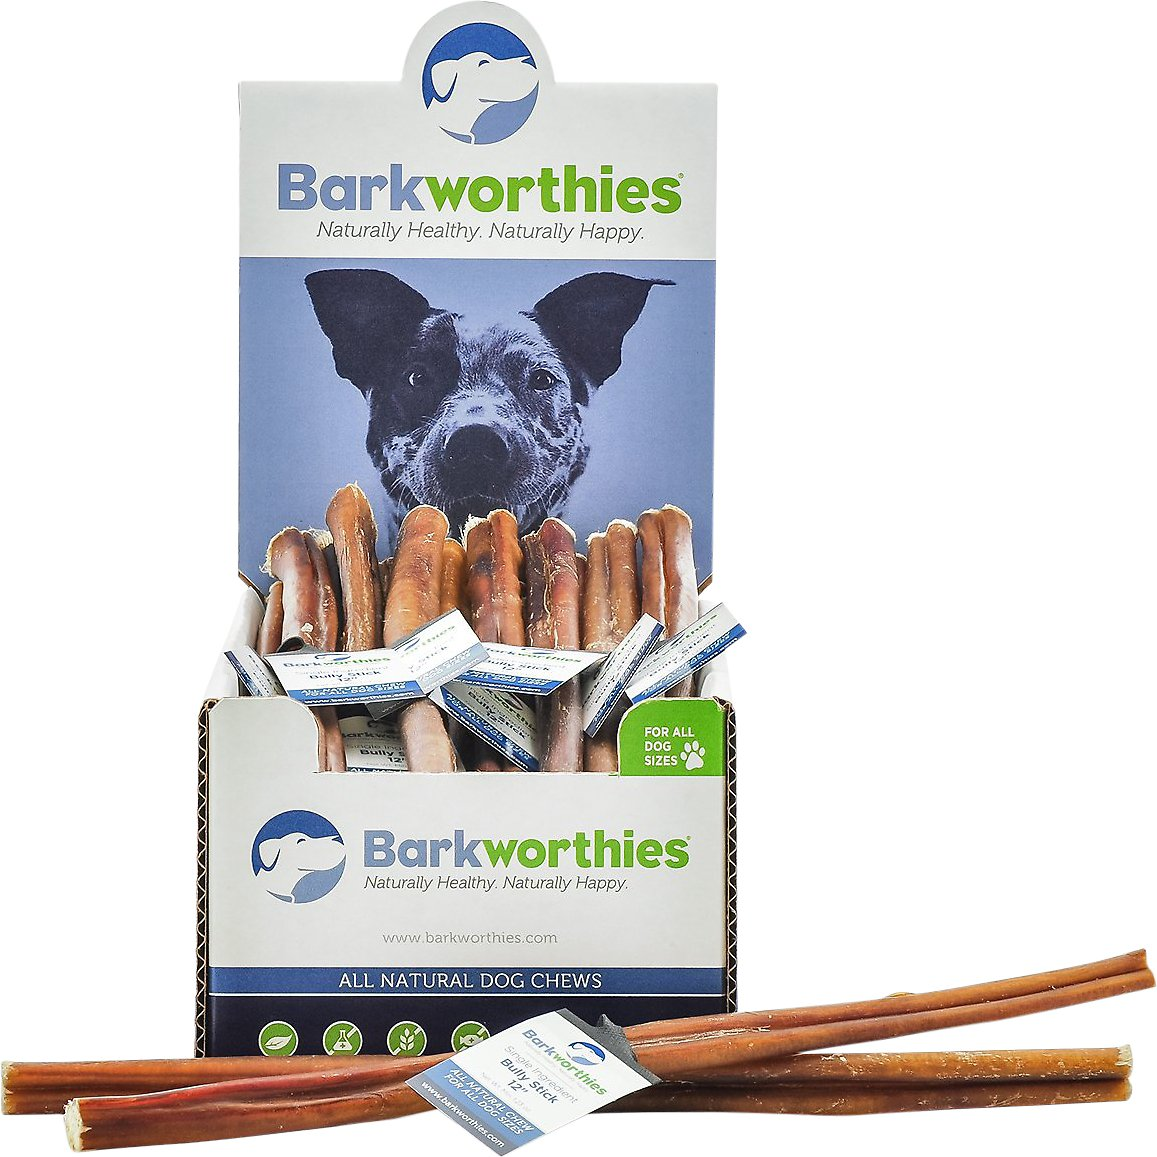 barkworthies 12 standard bully sticks dog treats case of 35. Black Bedroom Furniture Sets. Home Design Ideas